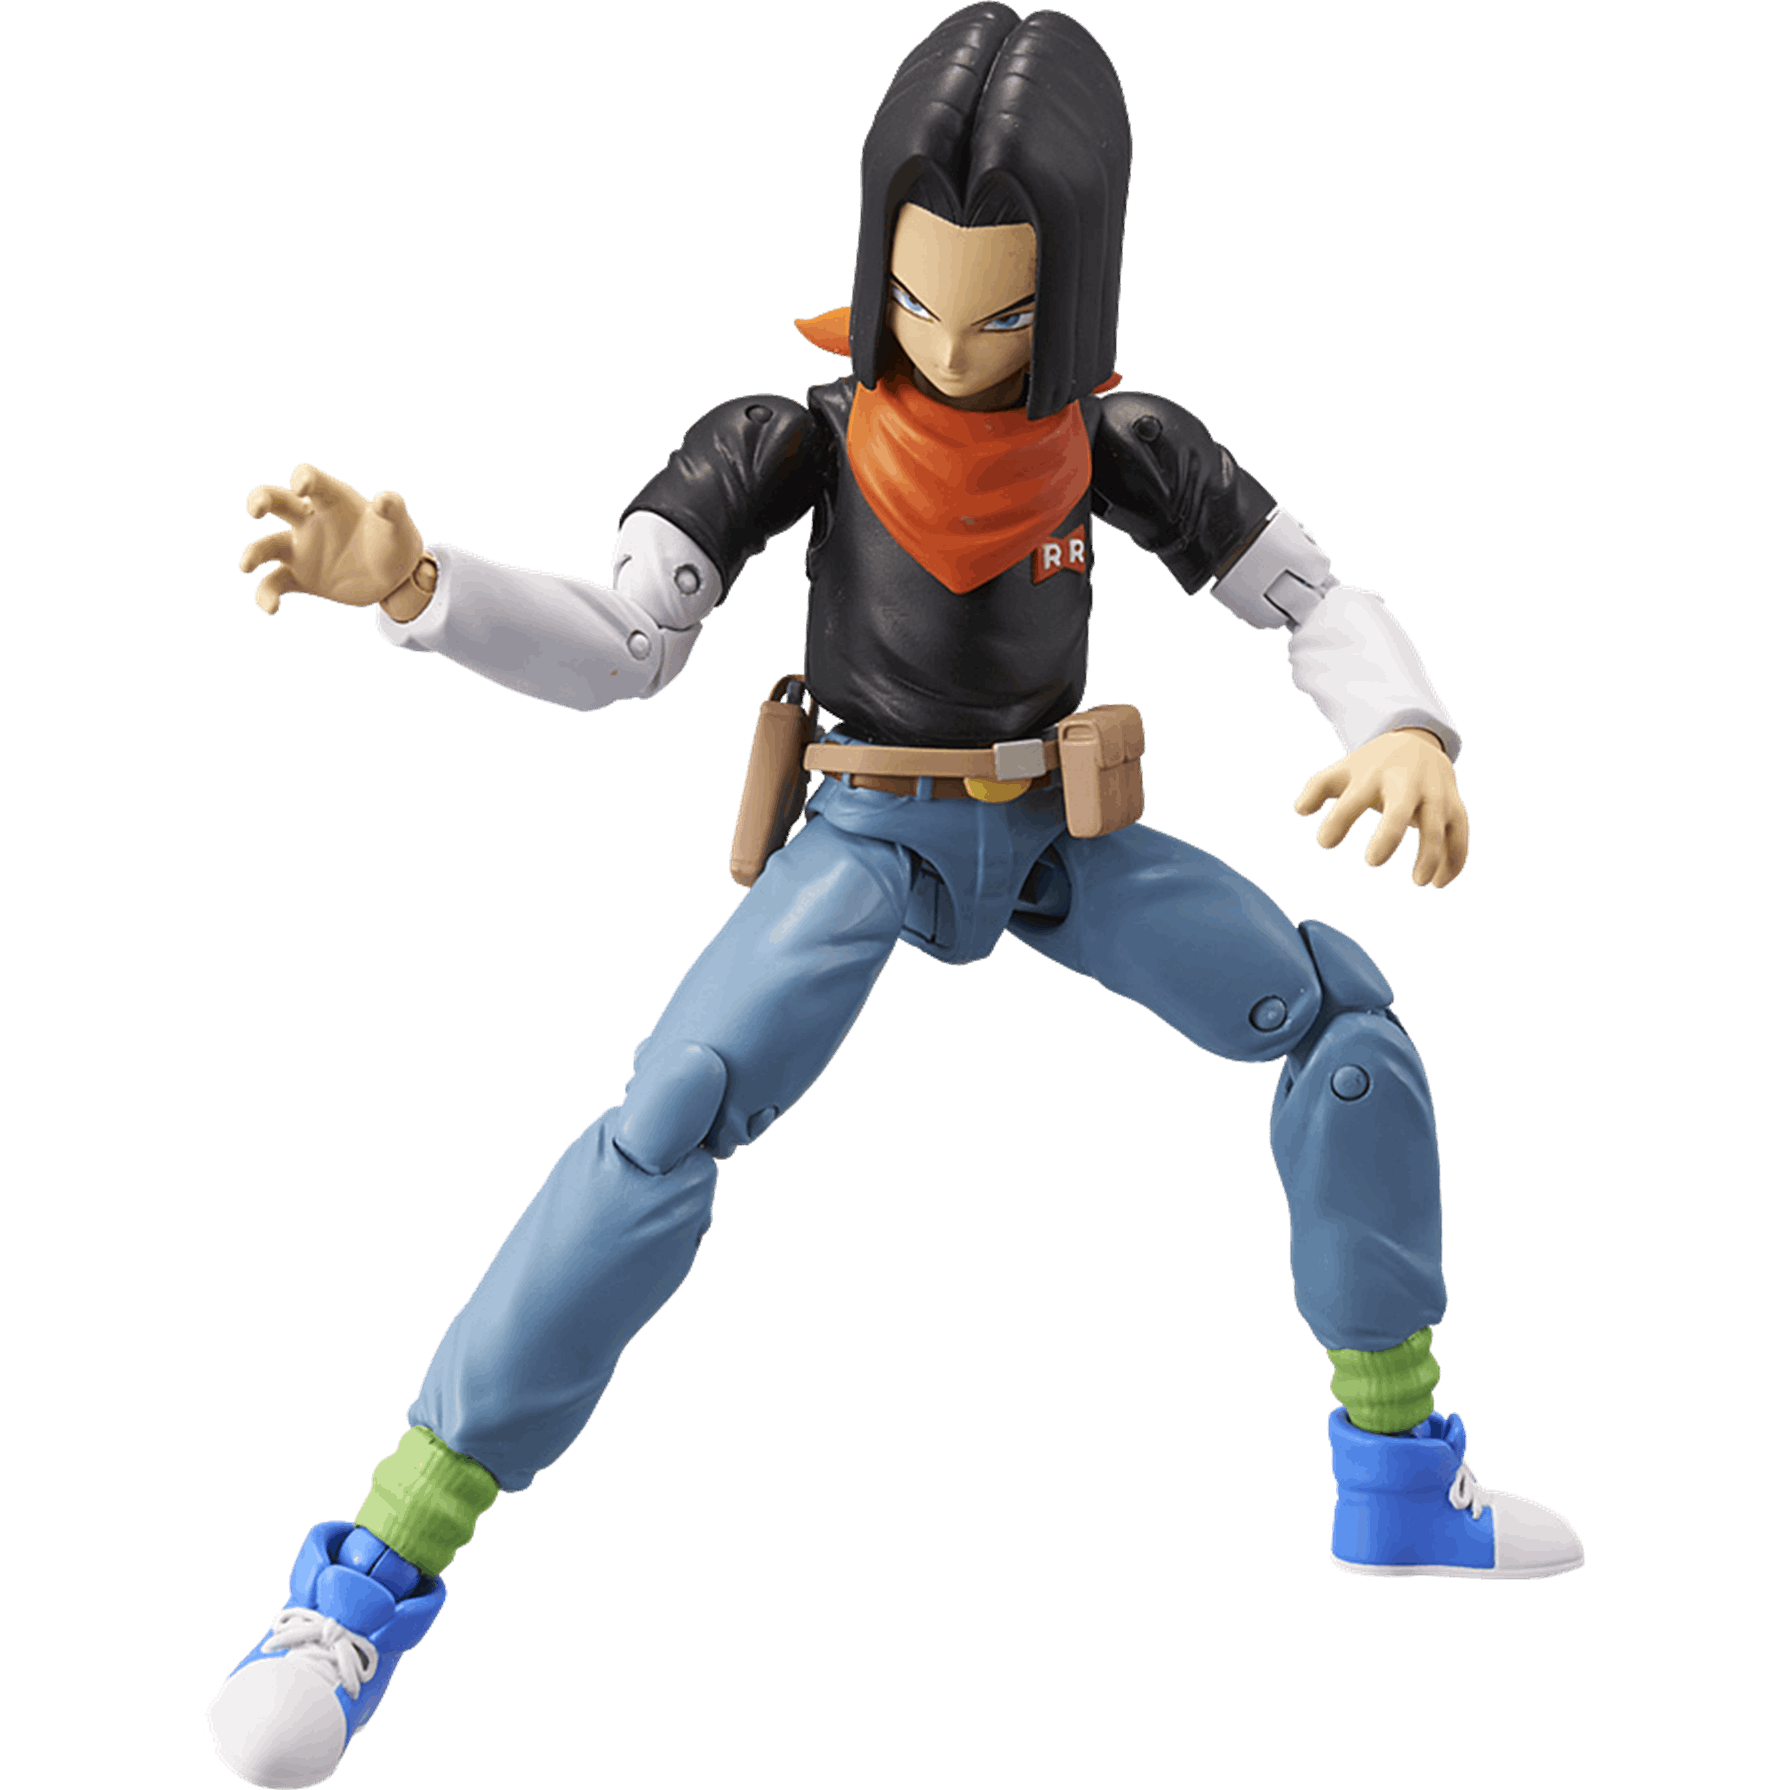 Dragon Ball Androide 17 Figura Deluxe